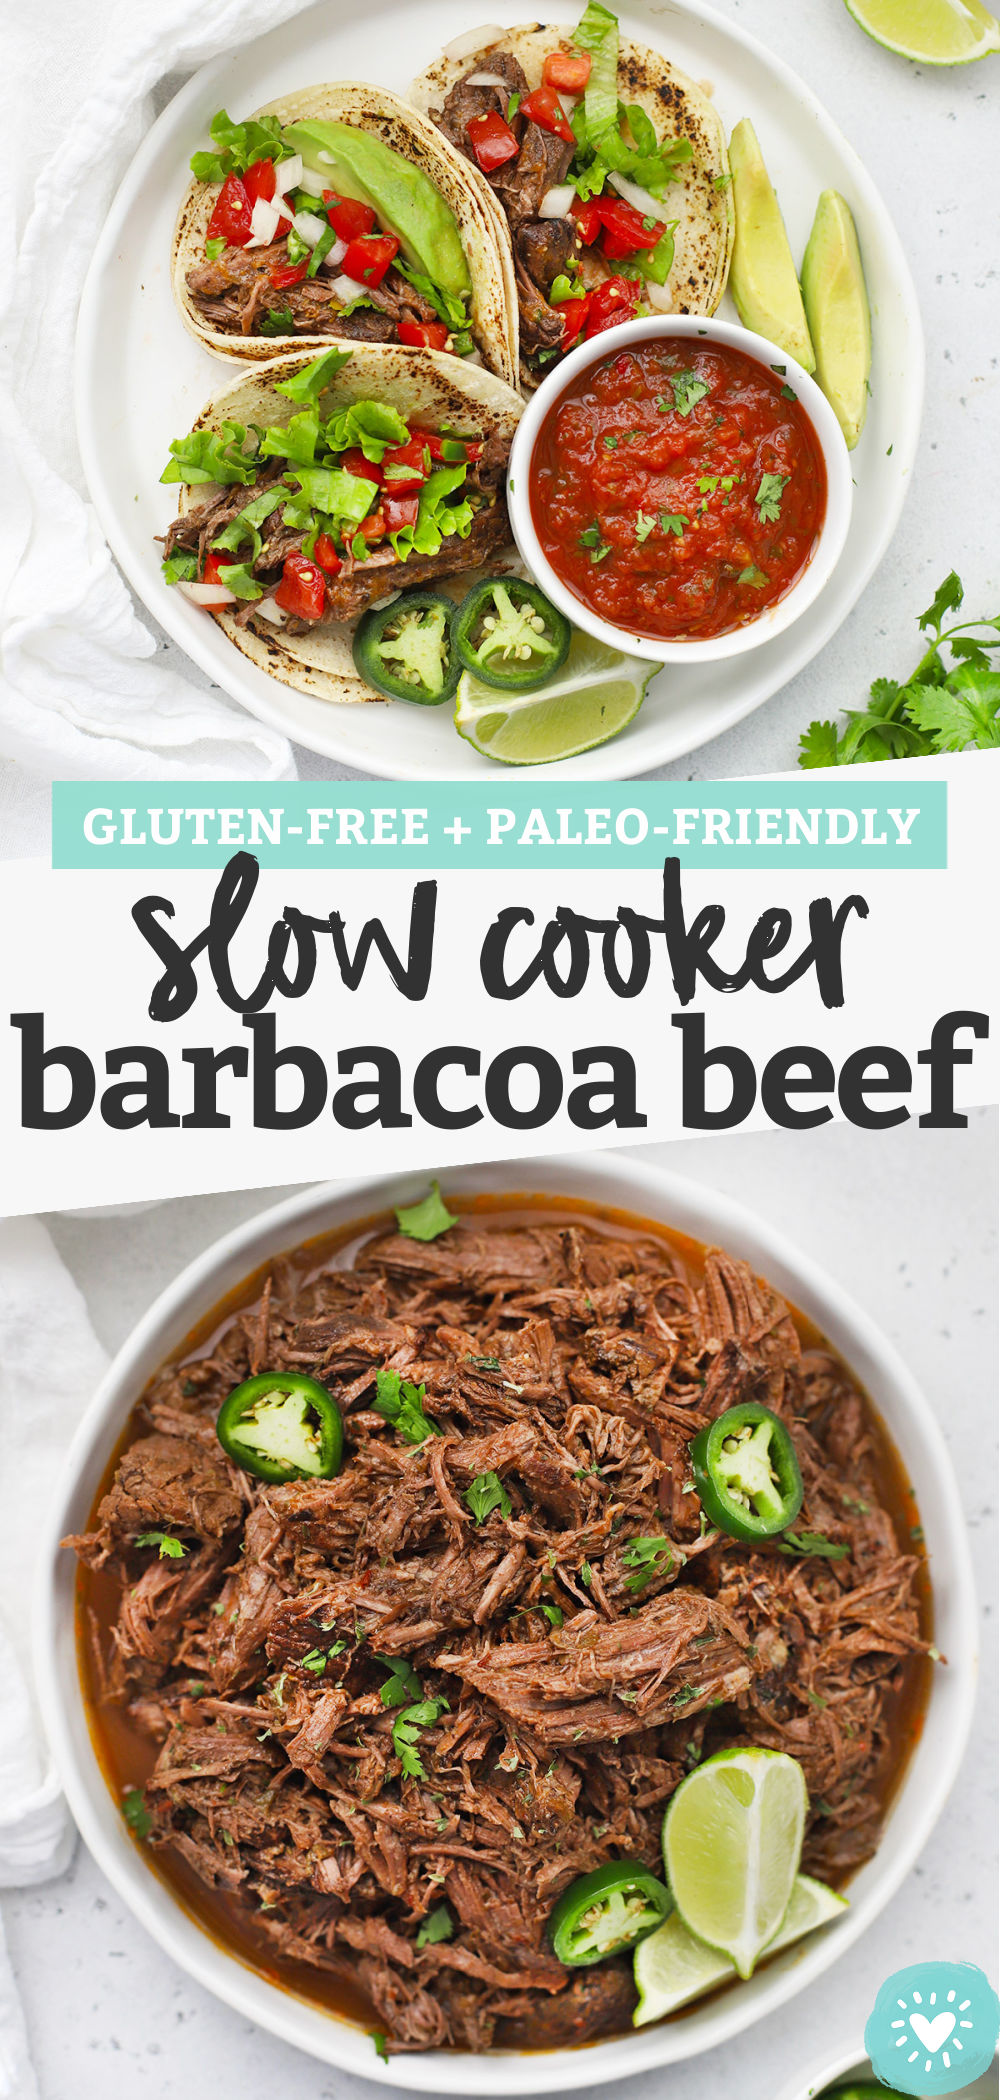 Slow Cooker Barbacoa Beef - Tender slow-cooker barbacoa beef makes the most amazing tacos, burritos, burrito bowls, nachos, and more! (Gluten-Free) // Barbacoa Beef Tacos // Crock pot barbacoa beef // Barbacoa beef burrito bowls // Paleo barbacoa beef #glutenfree #tacos #burritobowls #texmex #slowcooker #crockpot